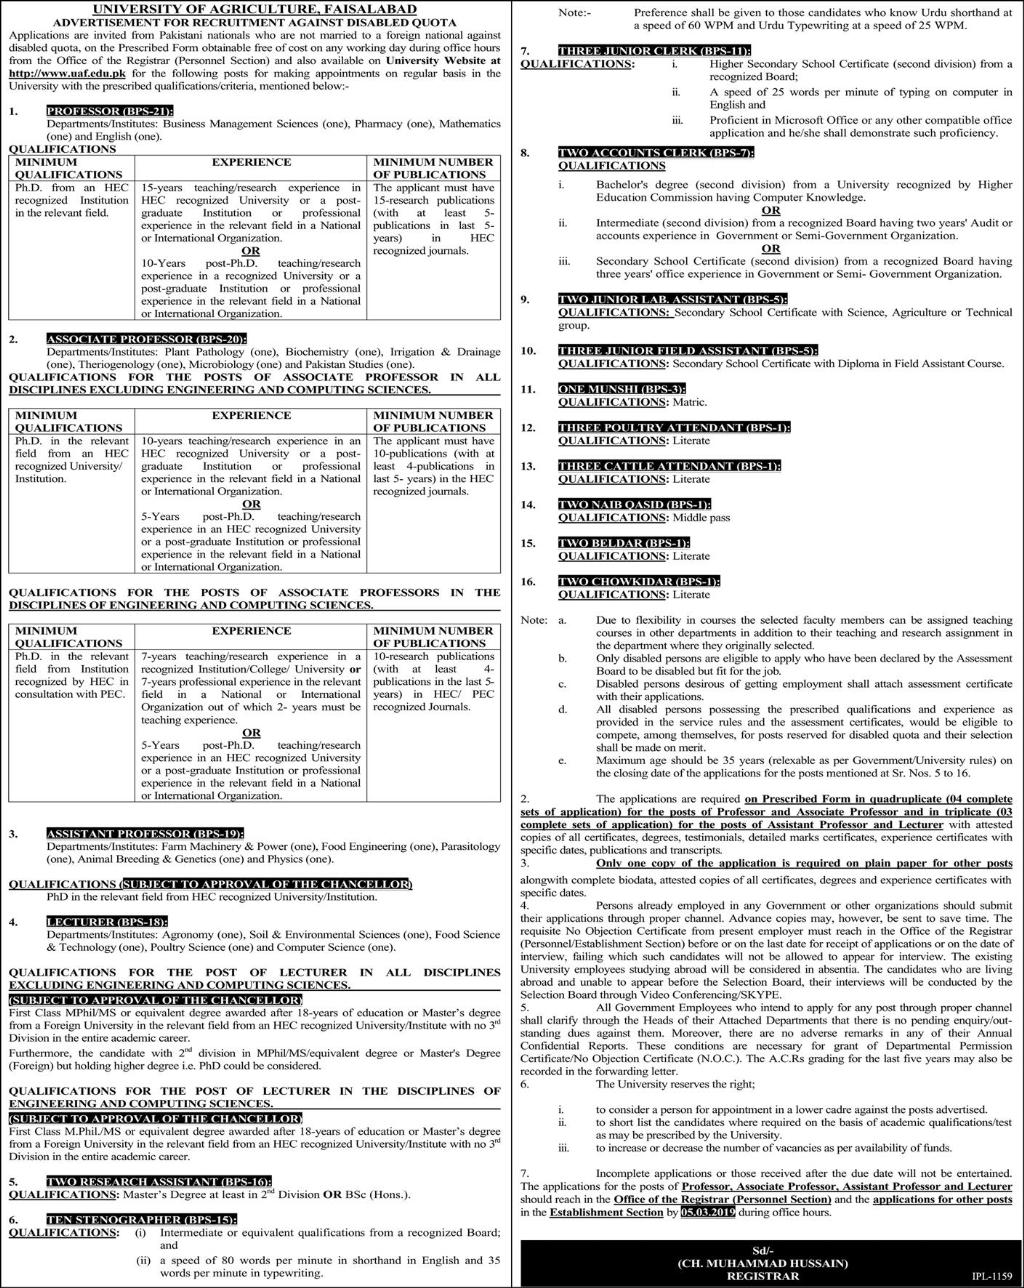 Jobs In University Of Agriculture Faisalabad 07 Feb 2019